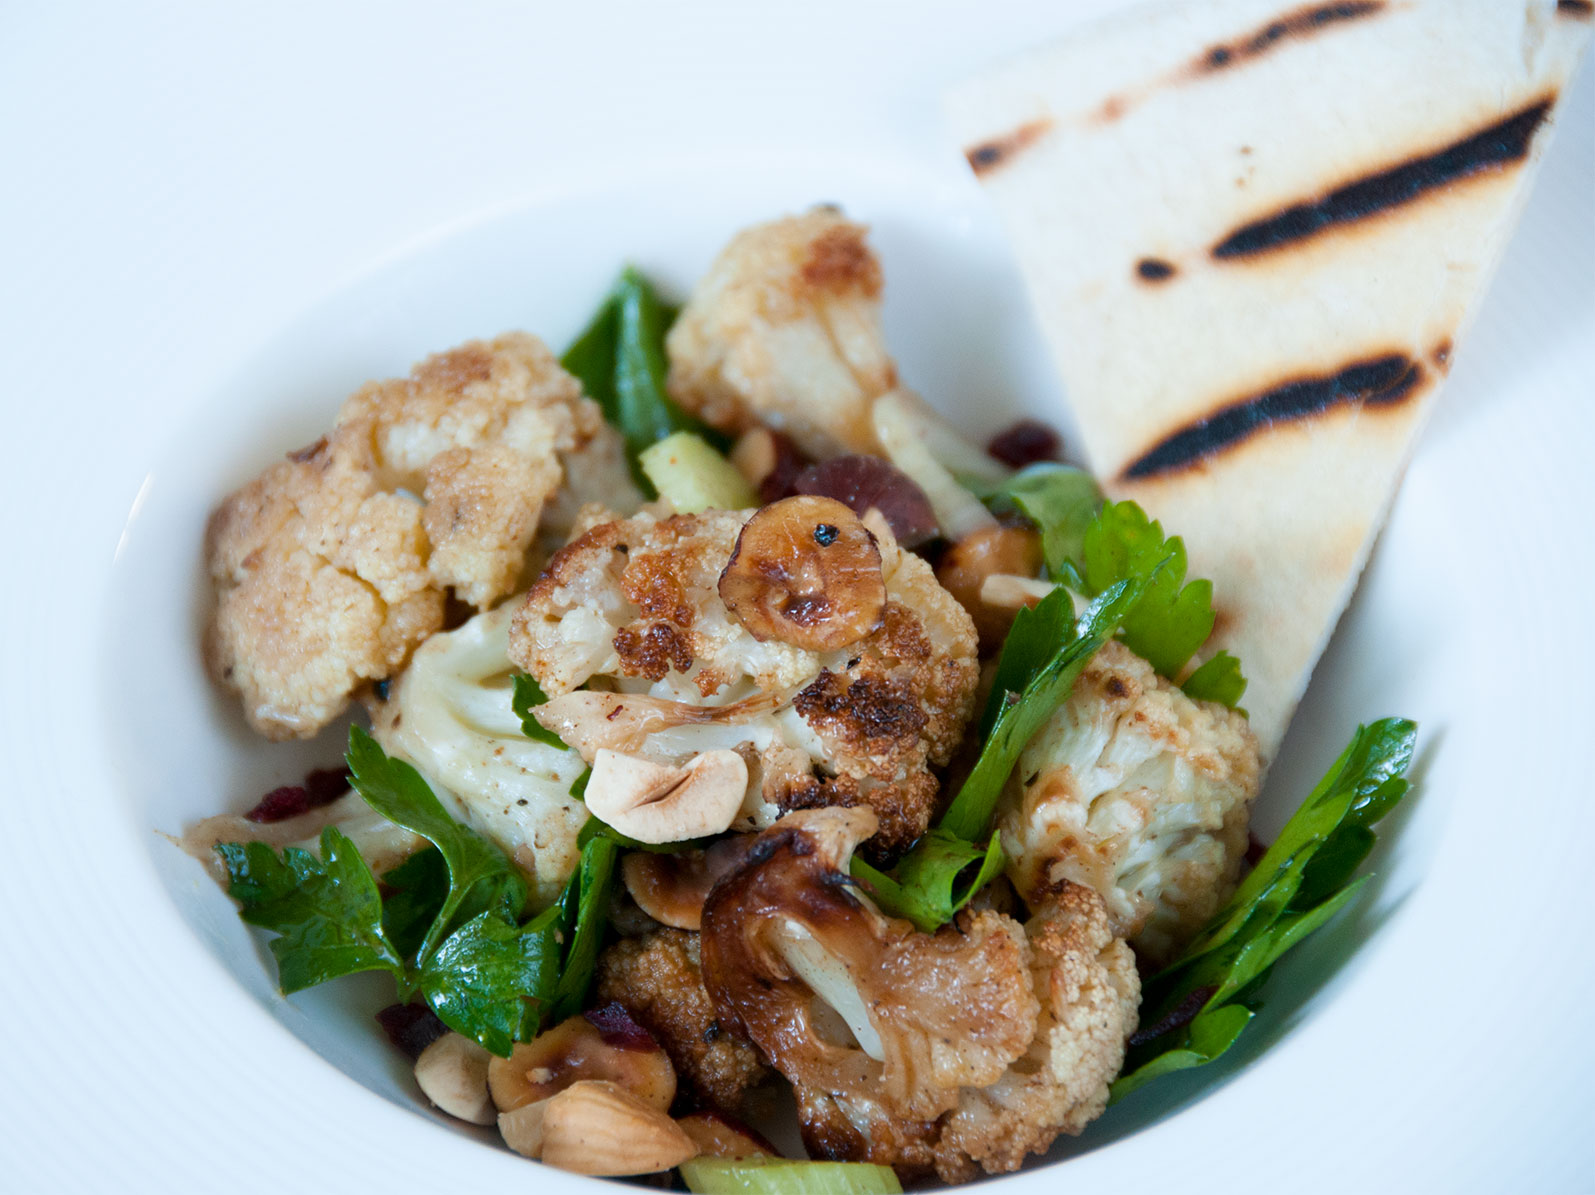 roasted cauliflower salad, with parsley and hazelnuts